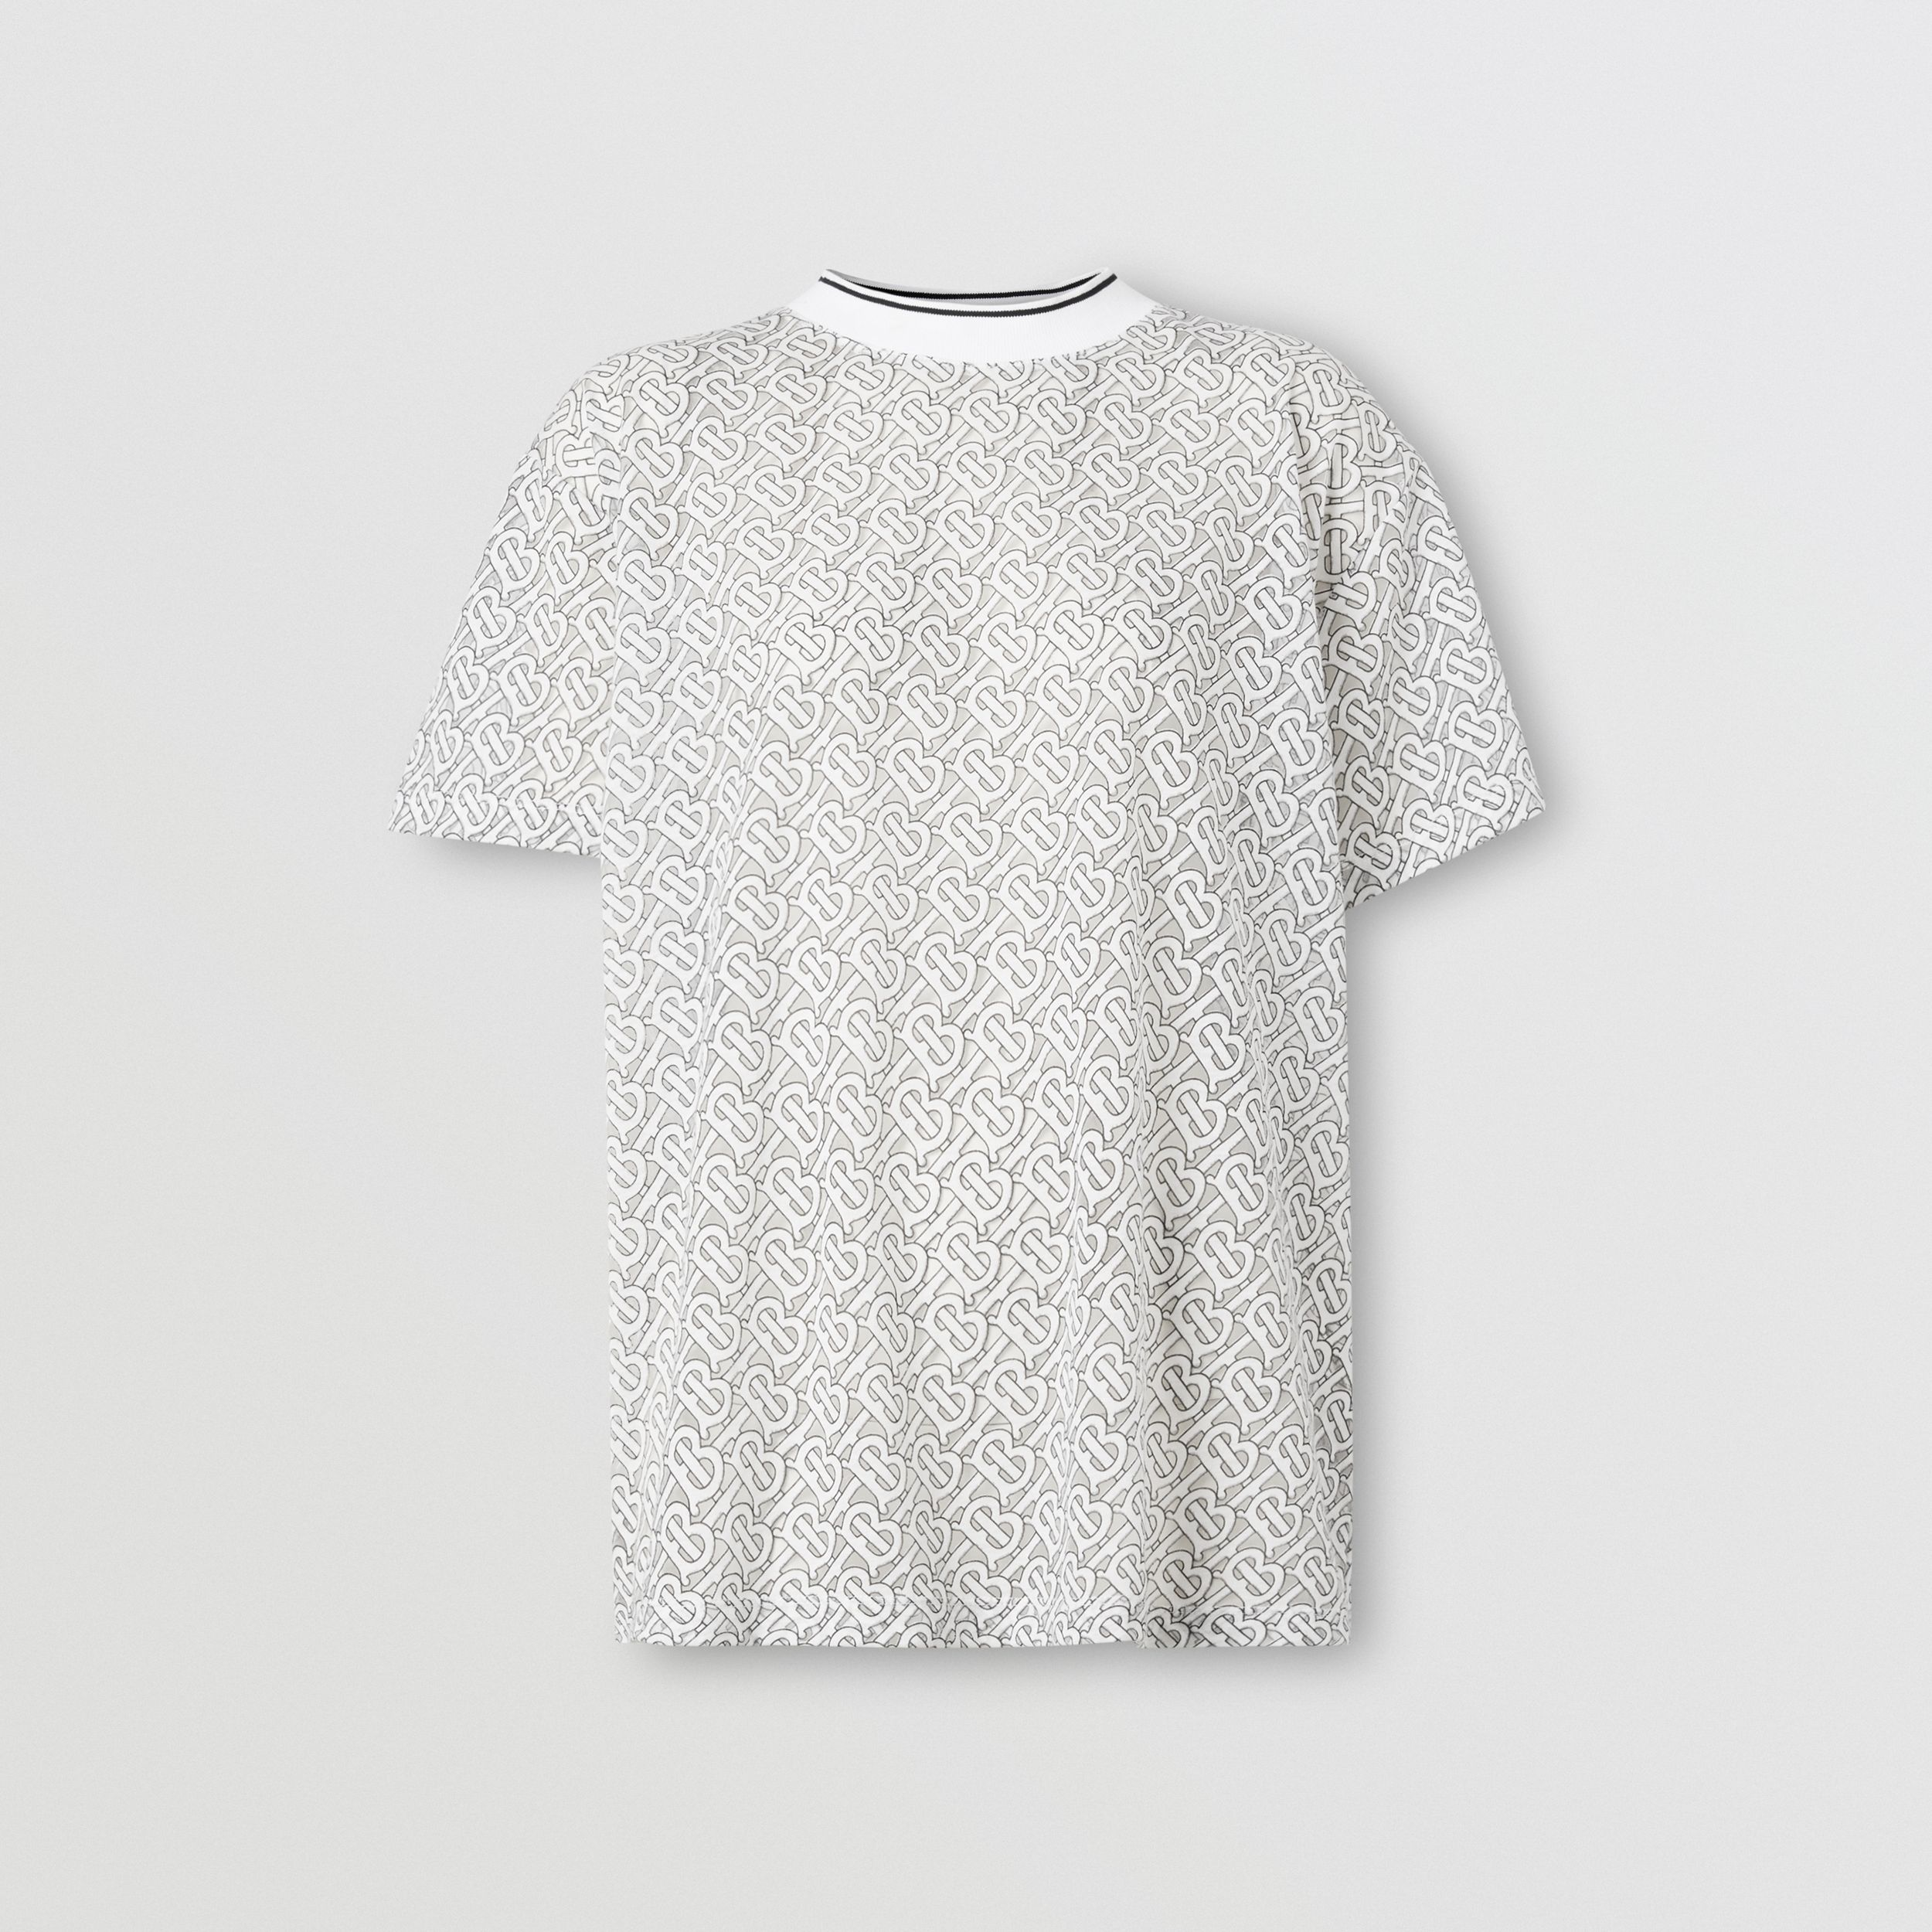 Monogram Devoré Oversized T-shirt in Off-white - Women | Burberry - 4